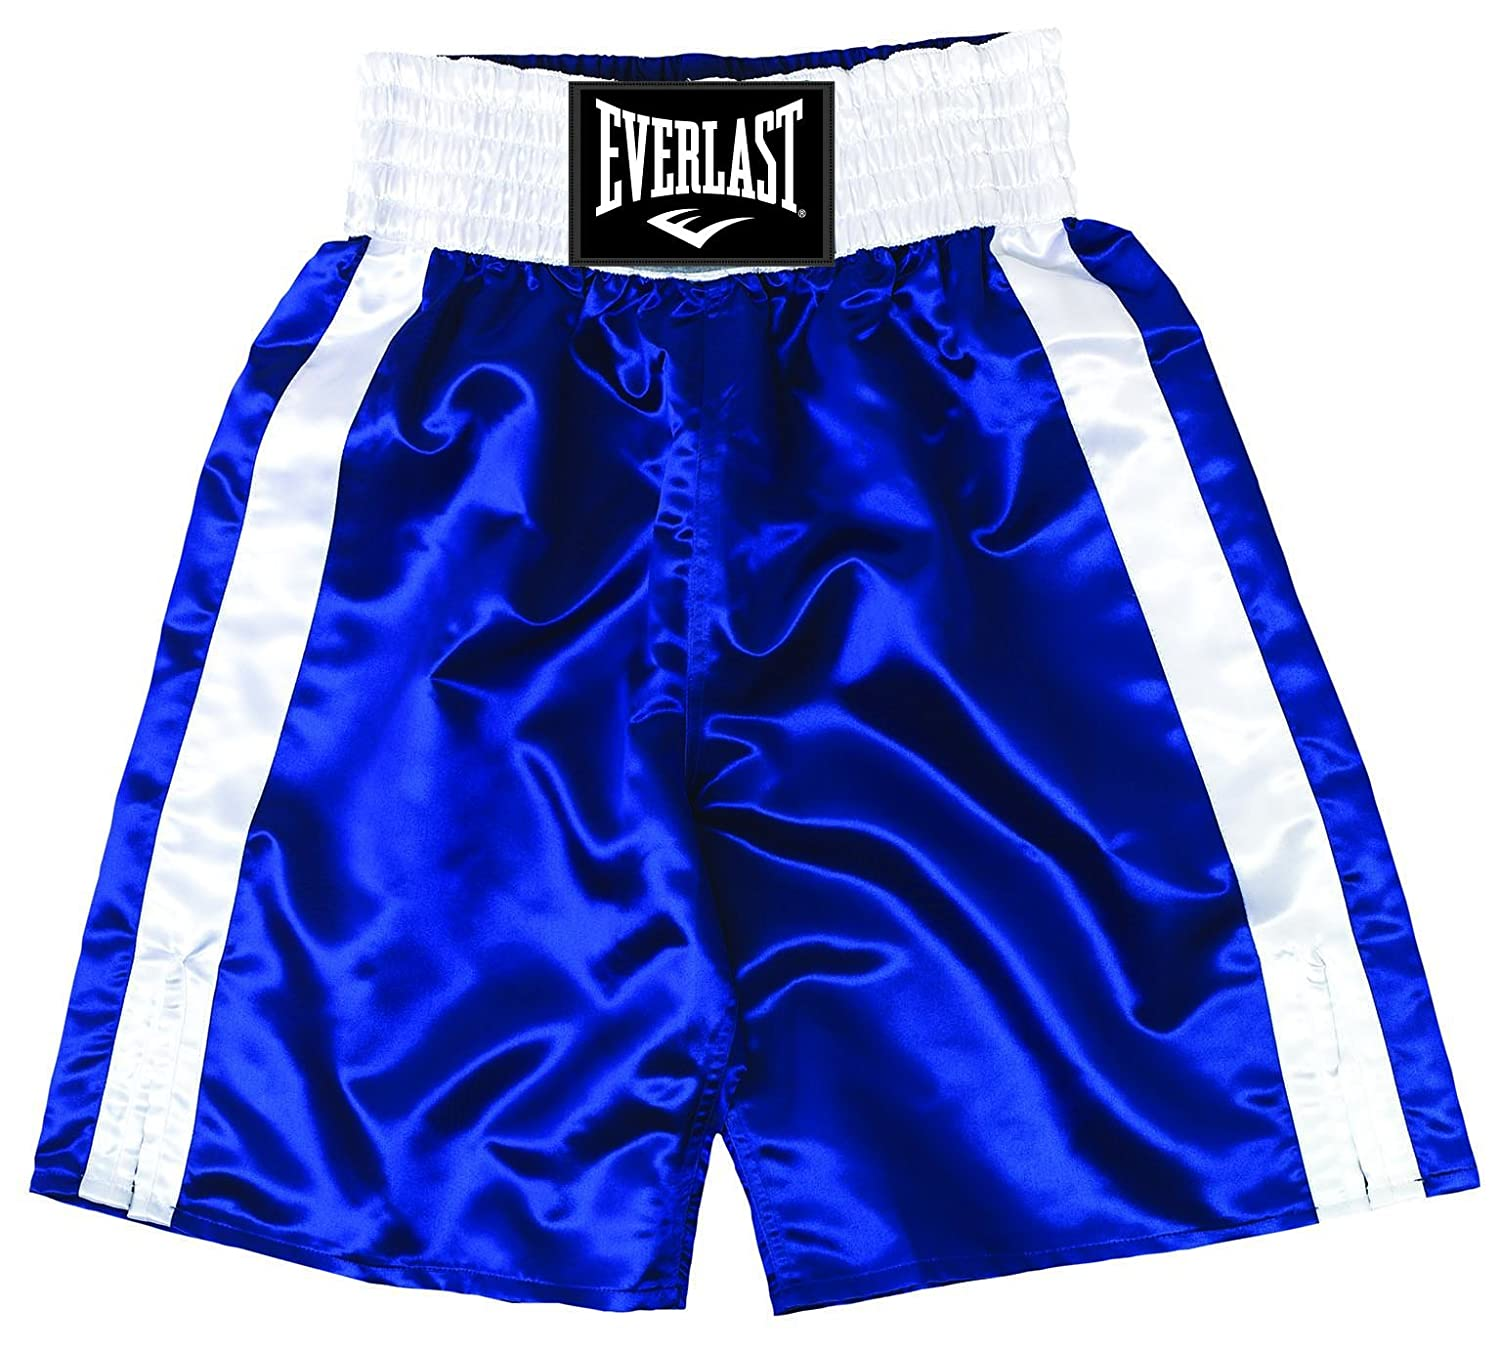 Everlast Mens Boxing Shorts Sports Training Inner Mesh Layer Blue Small